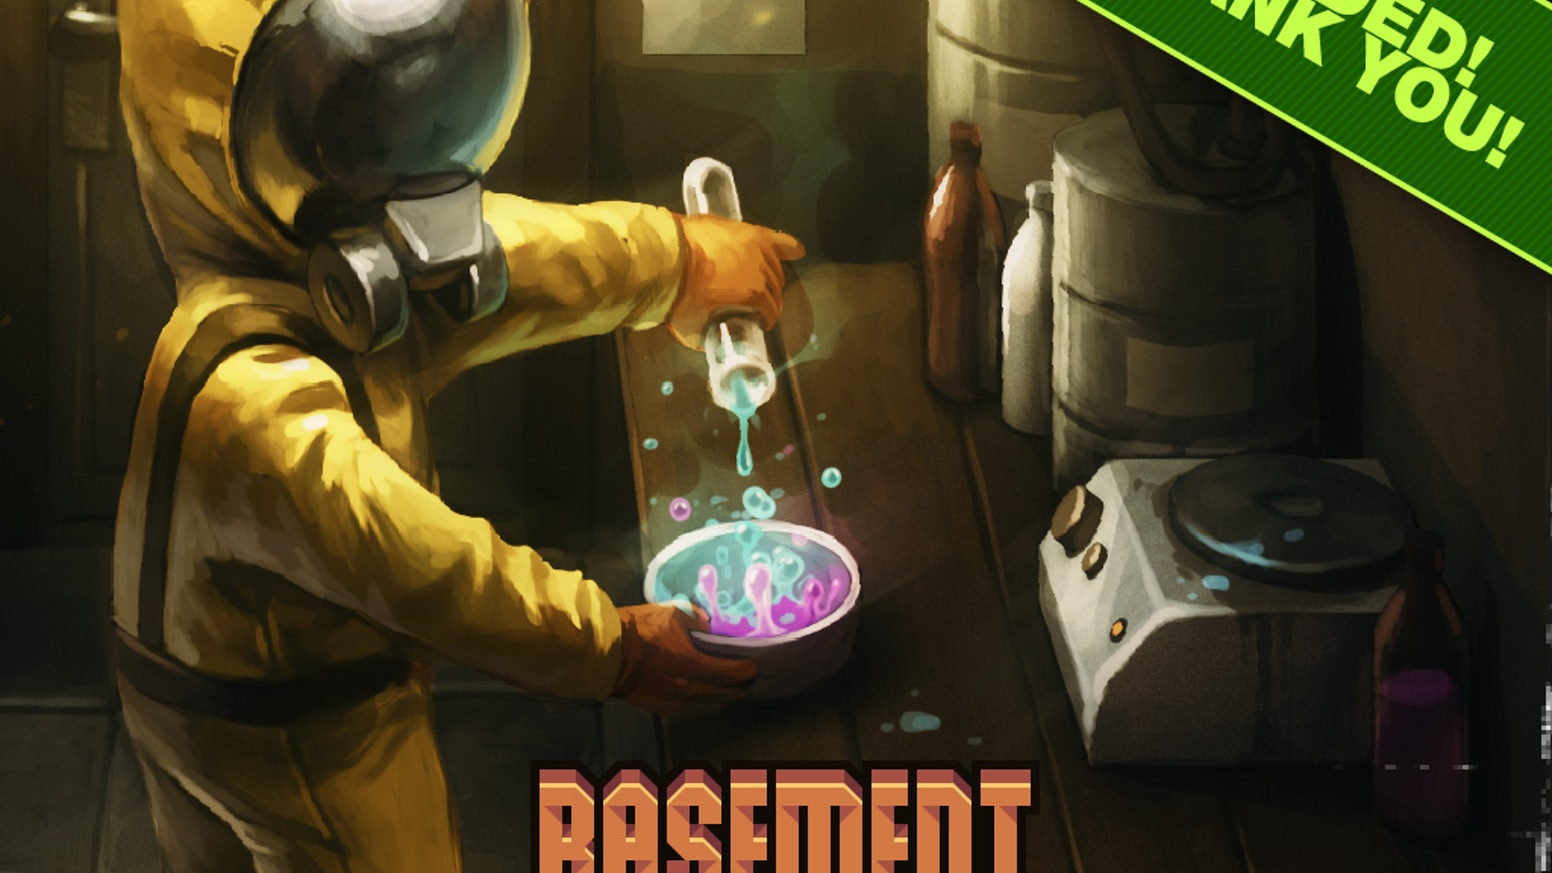 Basement is a drug-dealing strategy game.